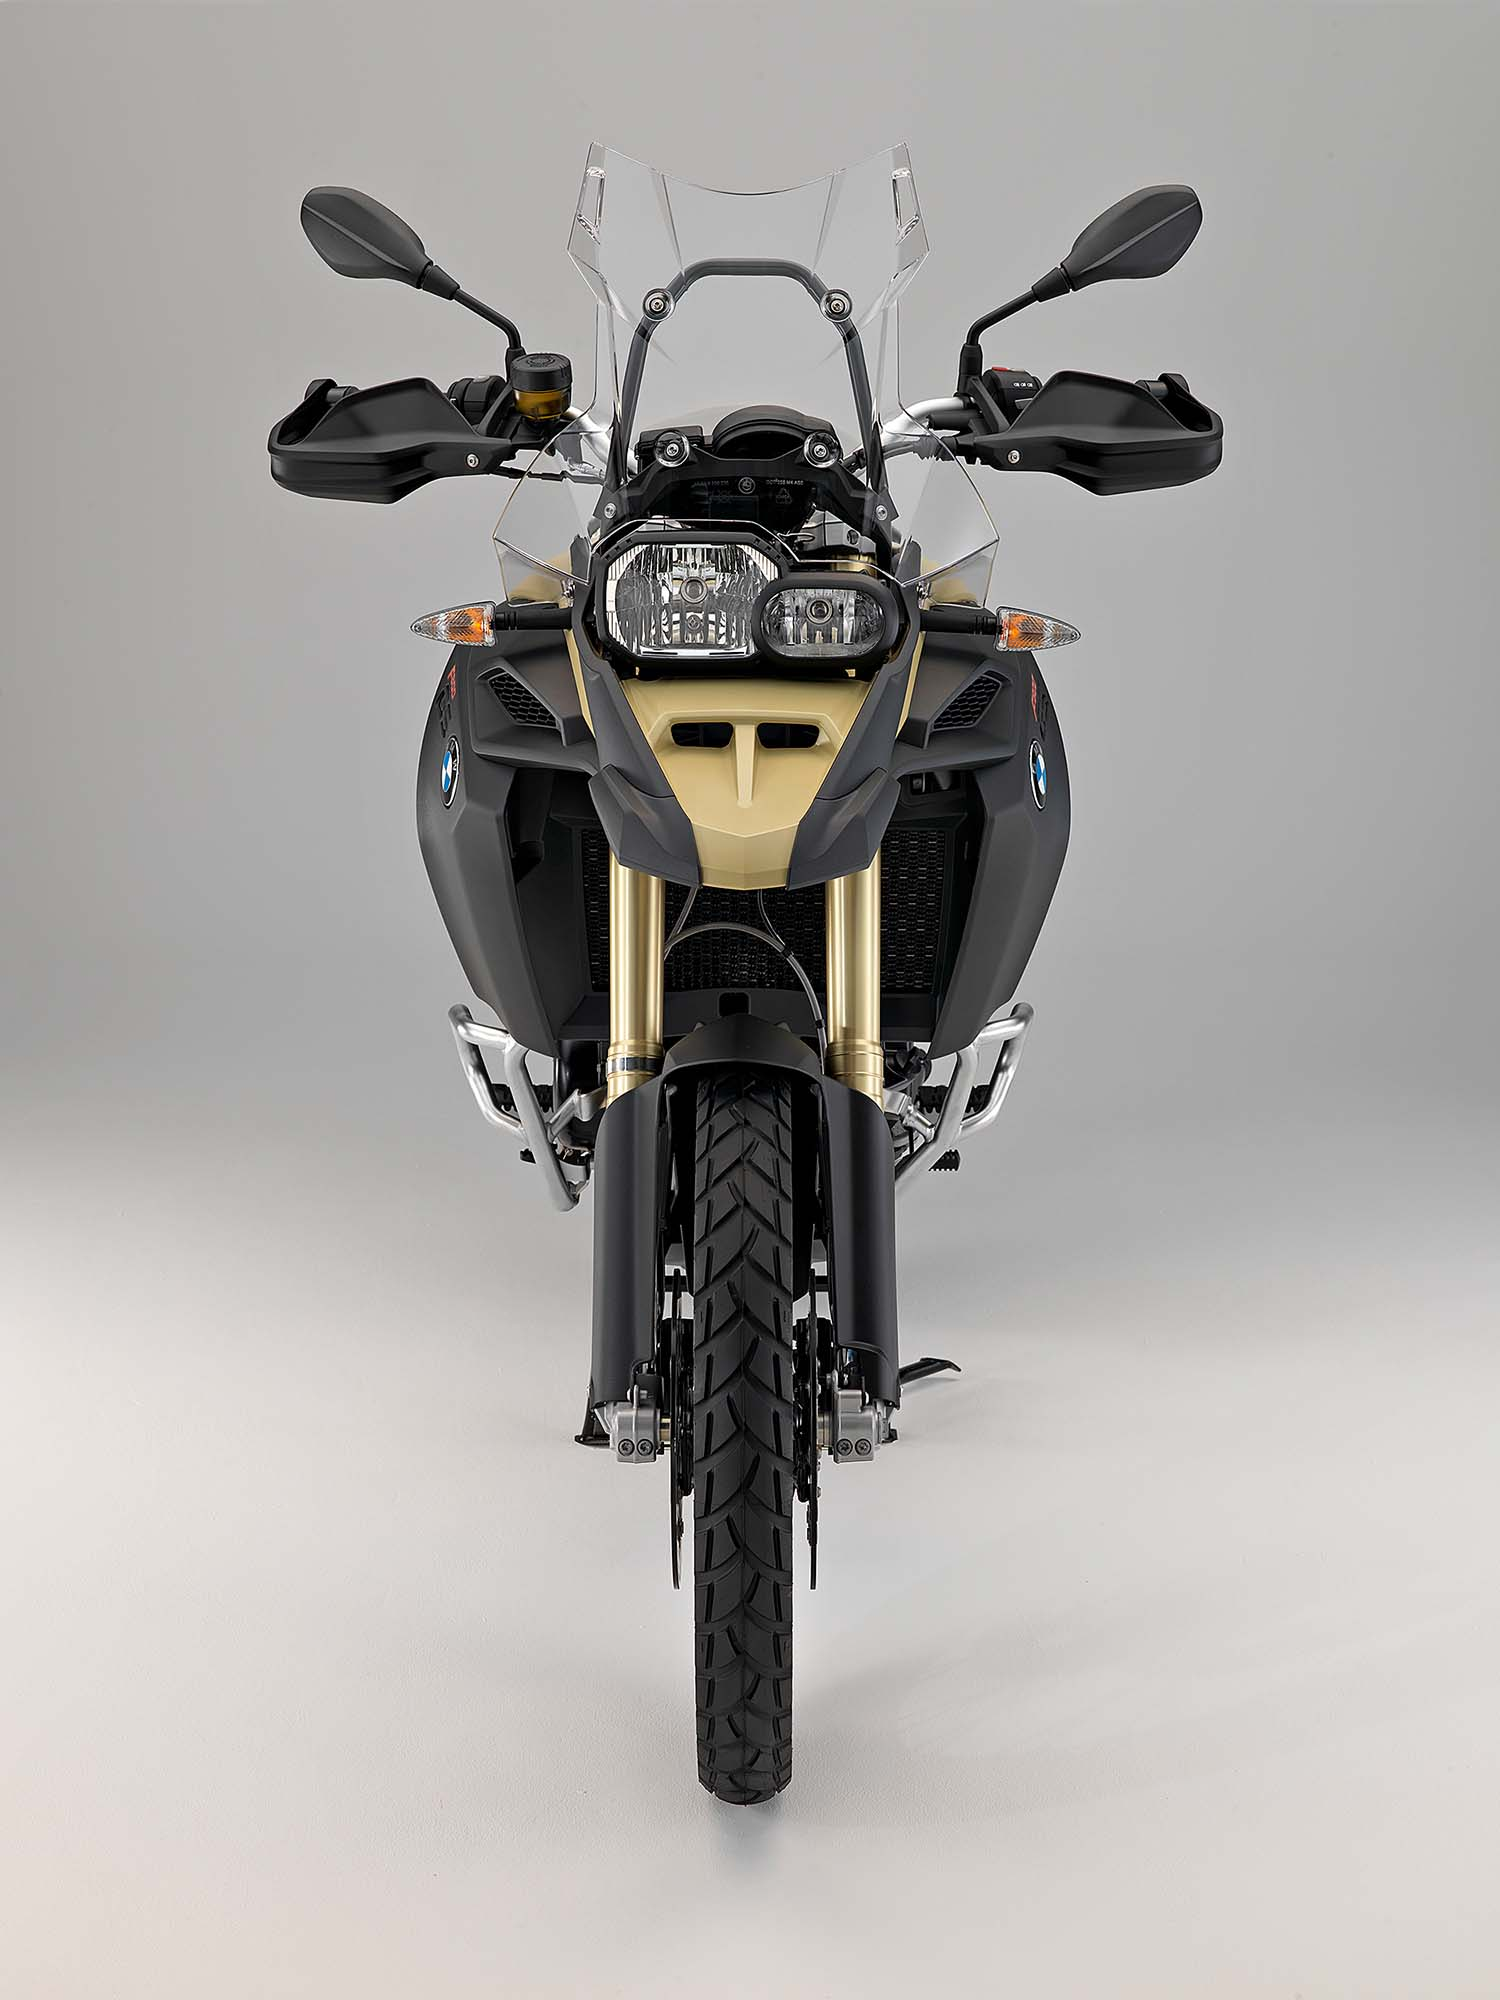 bmw f800gs adventure germany 39 s middleweight adv. Black Bedroom Furniture Sets. Home Design Ideas